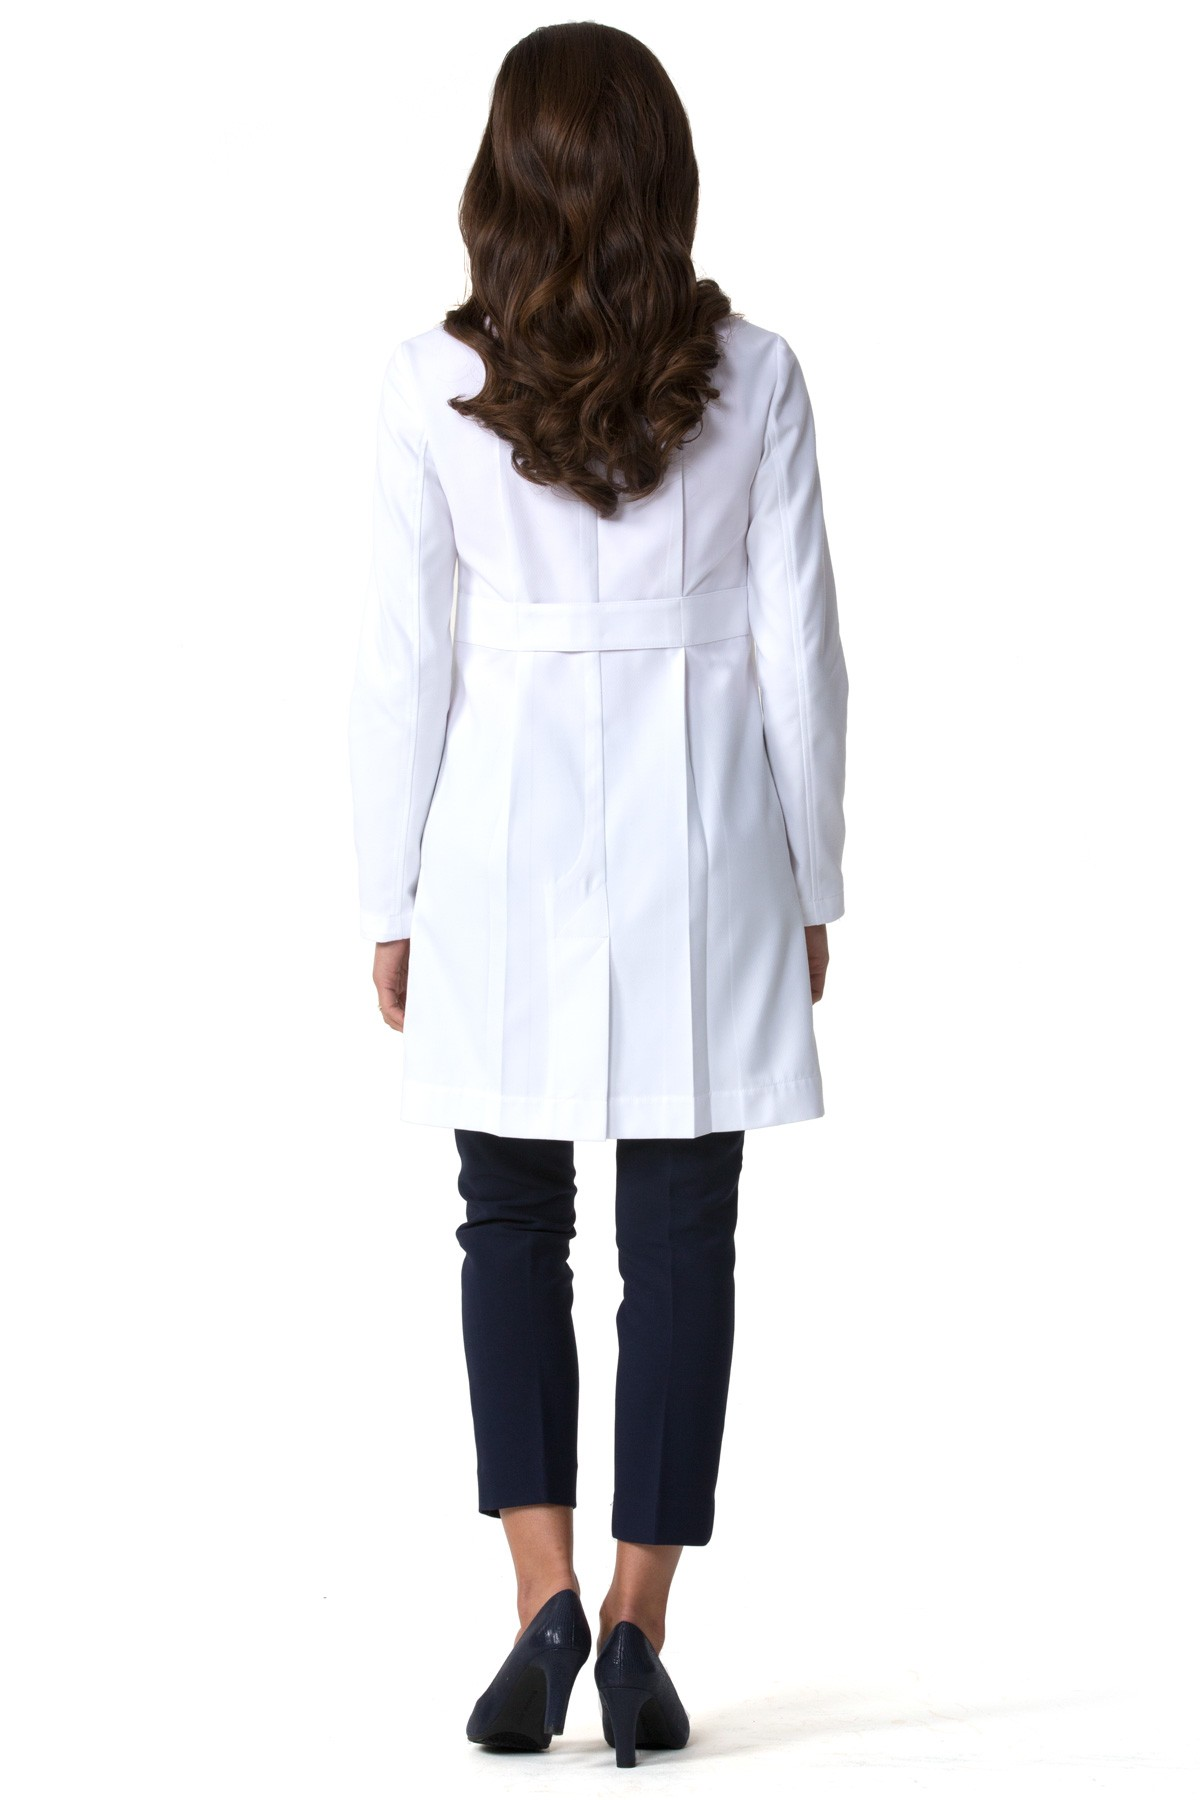 The first true petite lab coat for women, the Ellody back waistband elongates a woman's silhouette.